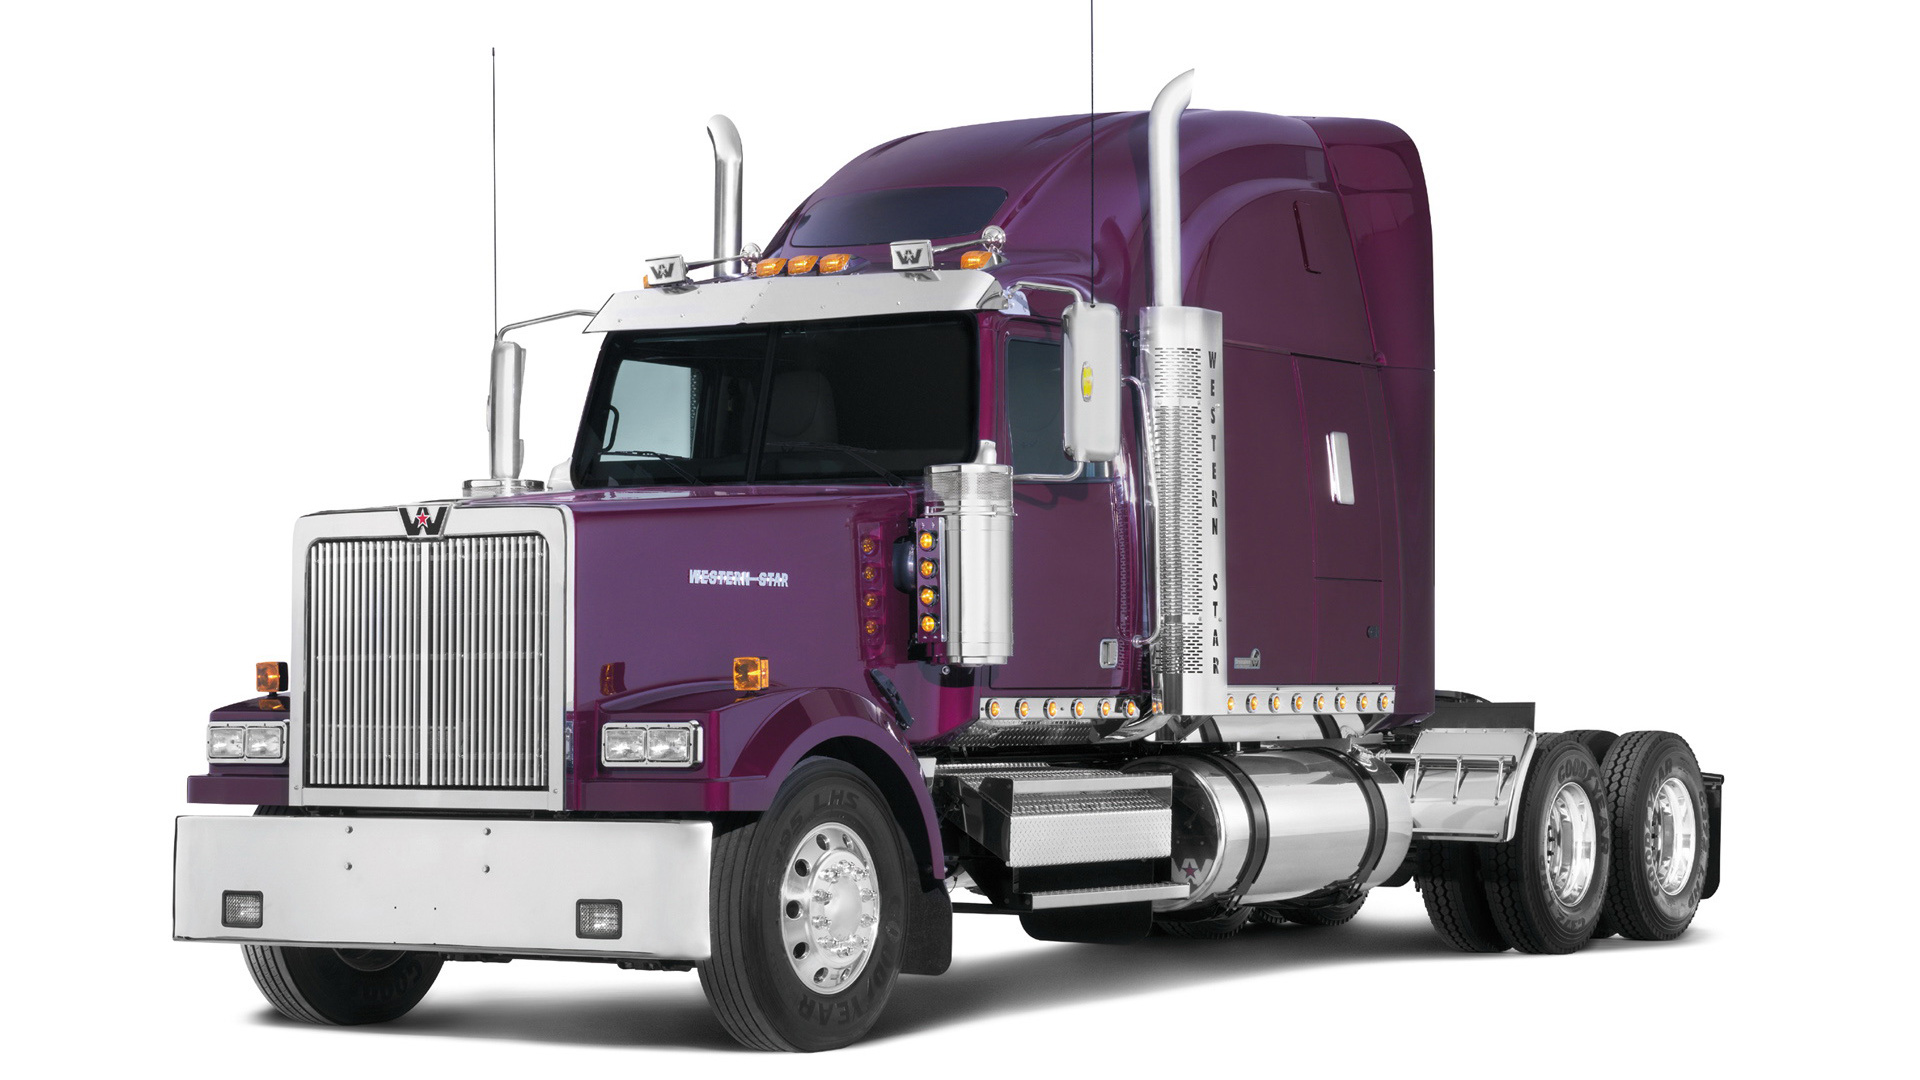 Western Star Semi Trailer Full Hd Wallpaper And Background